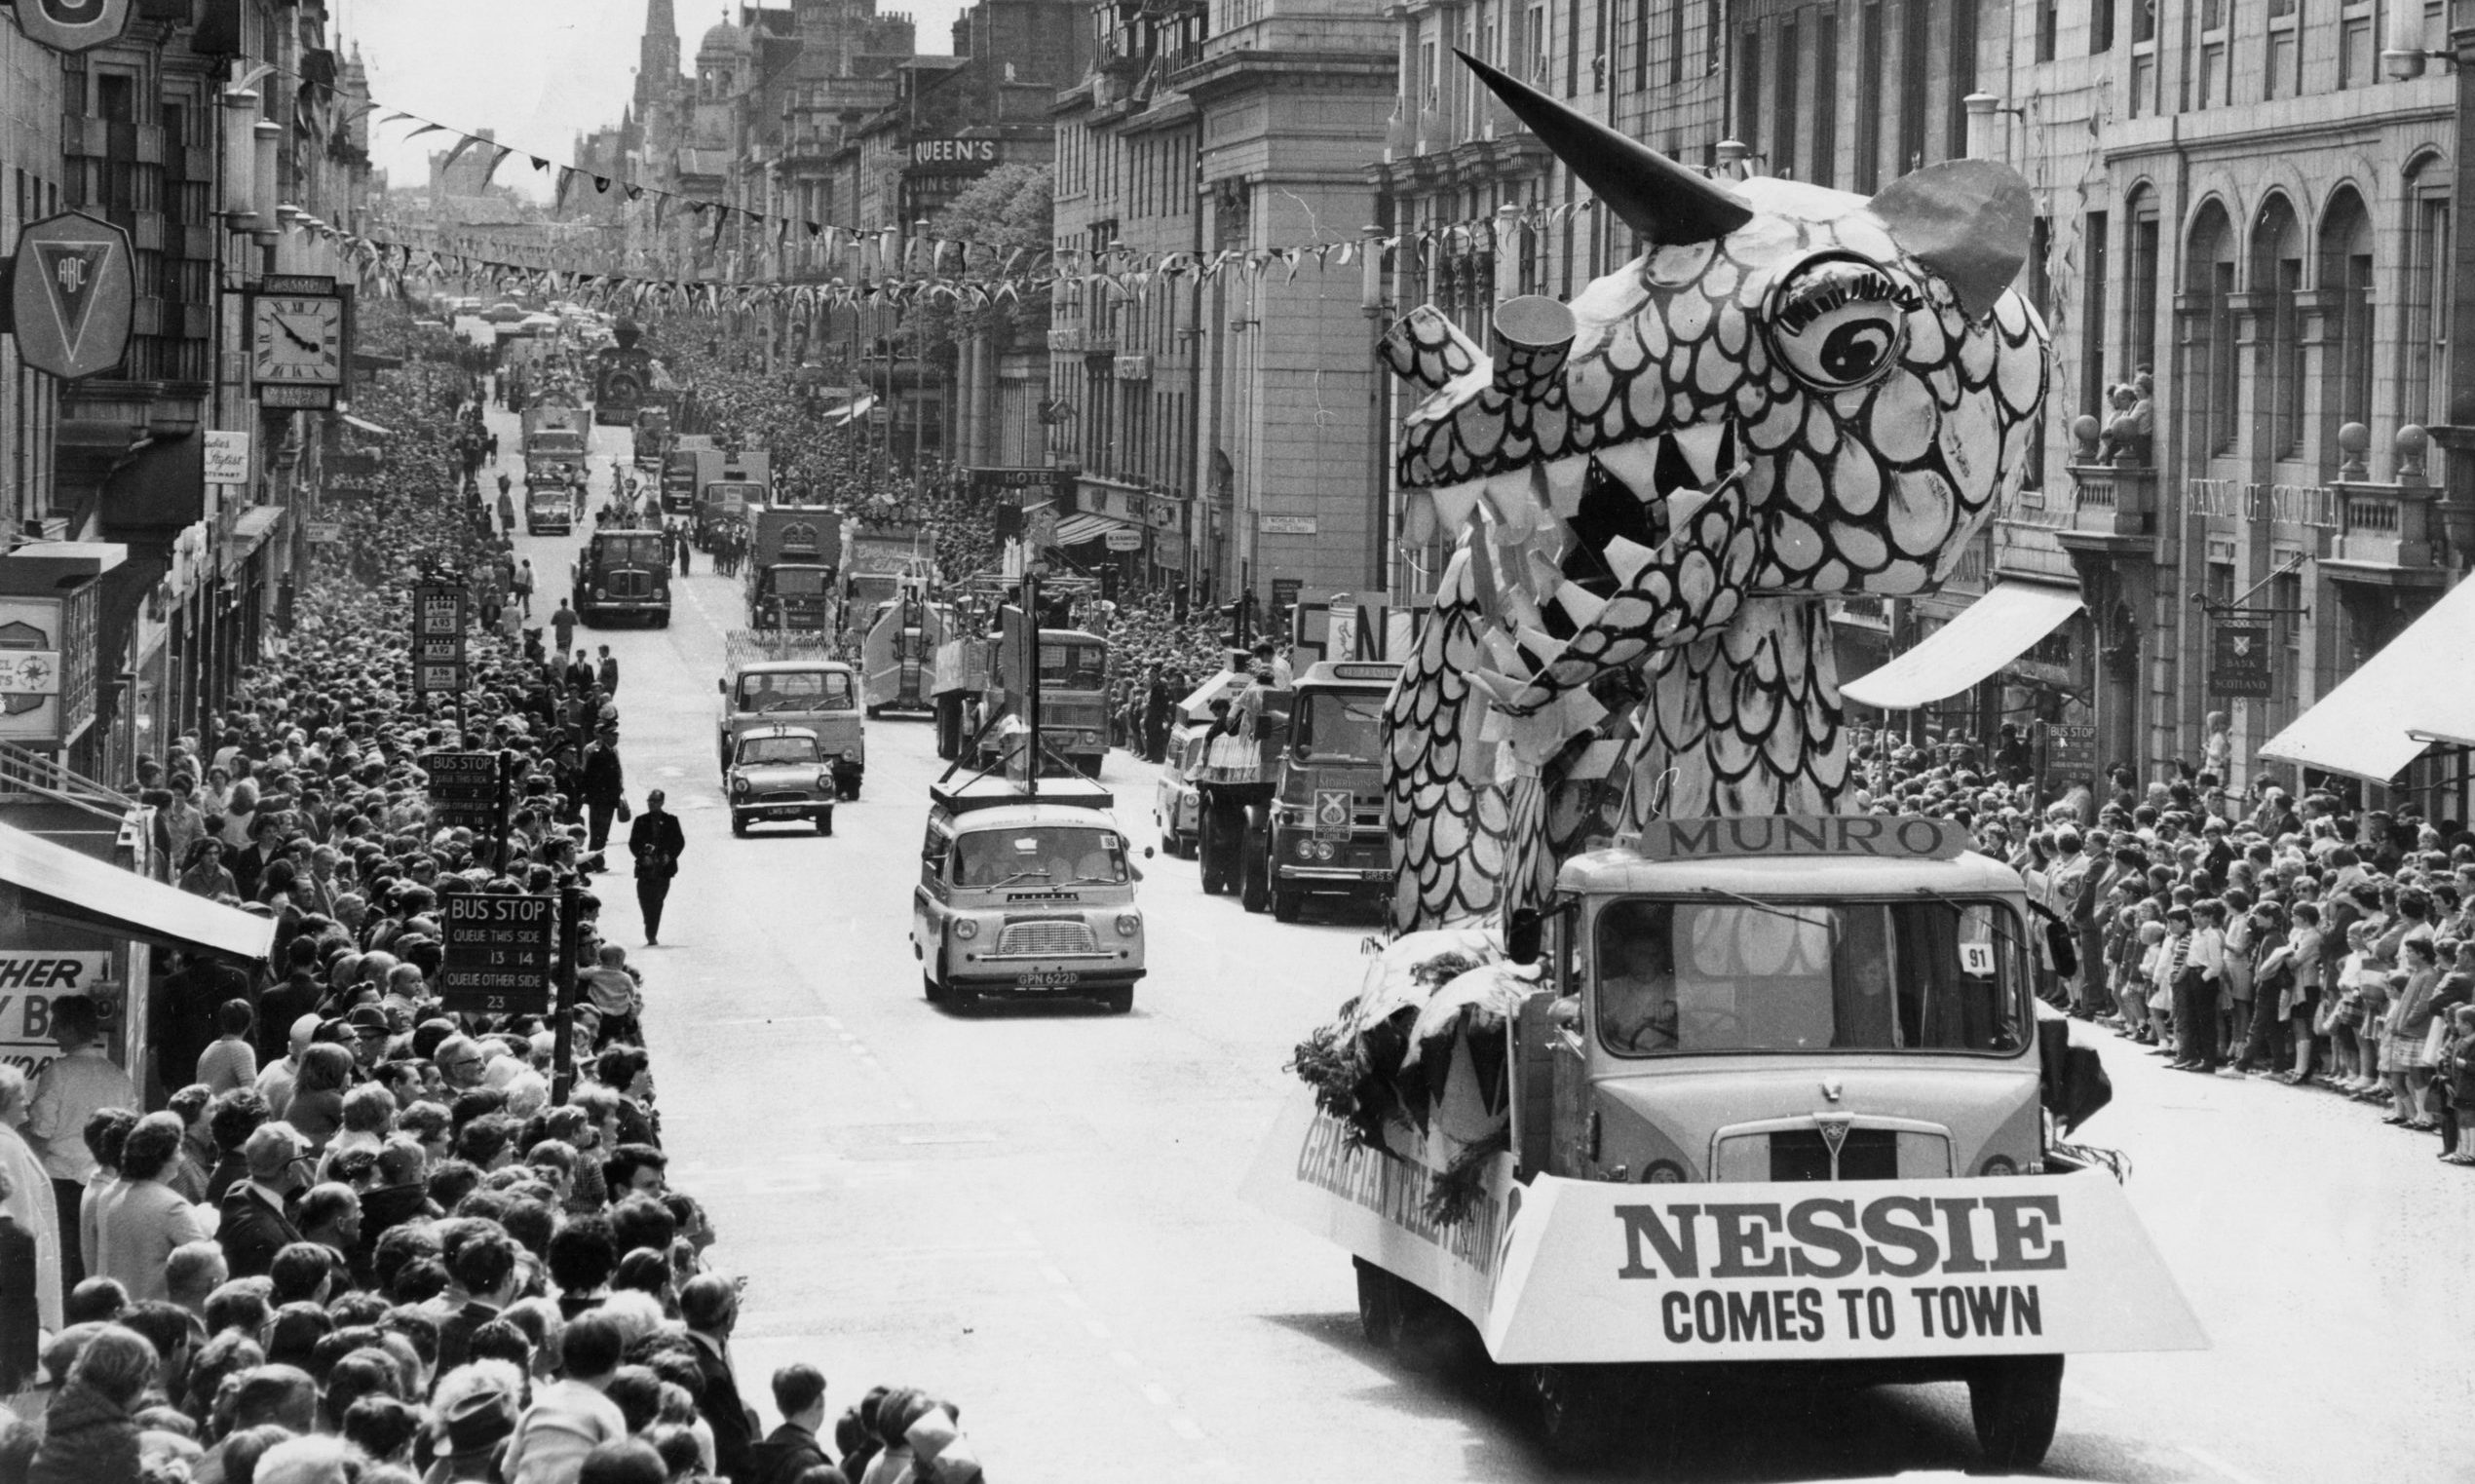 Parades and crowds filled the city centre for the 1968 Aberdeen Festival, which was launched in the wake of a typhoid outbreak.